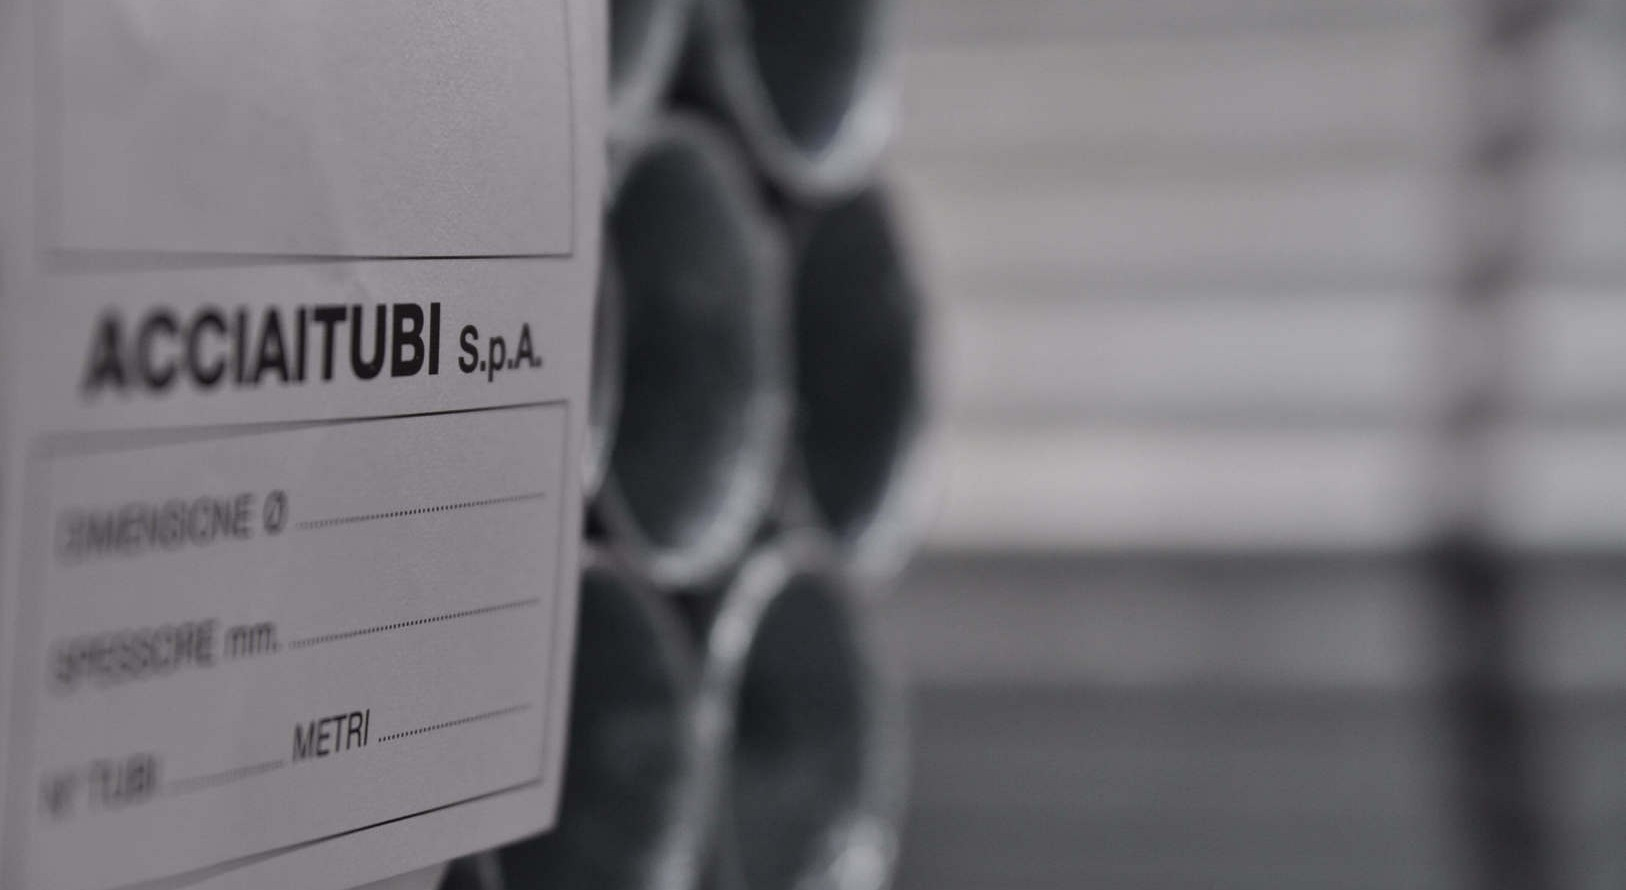 Acciaitubi steel tube certifications